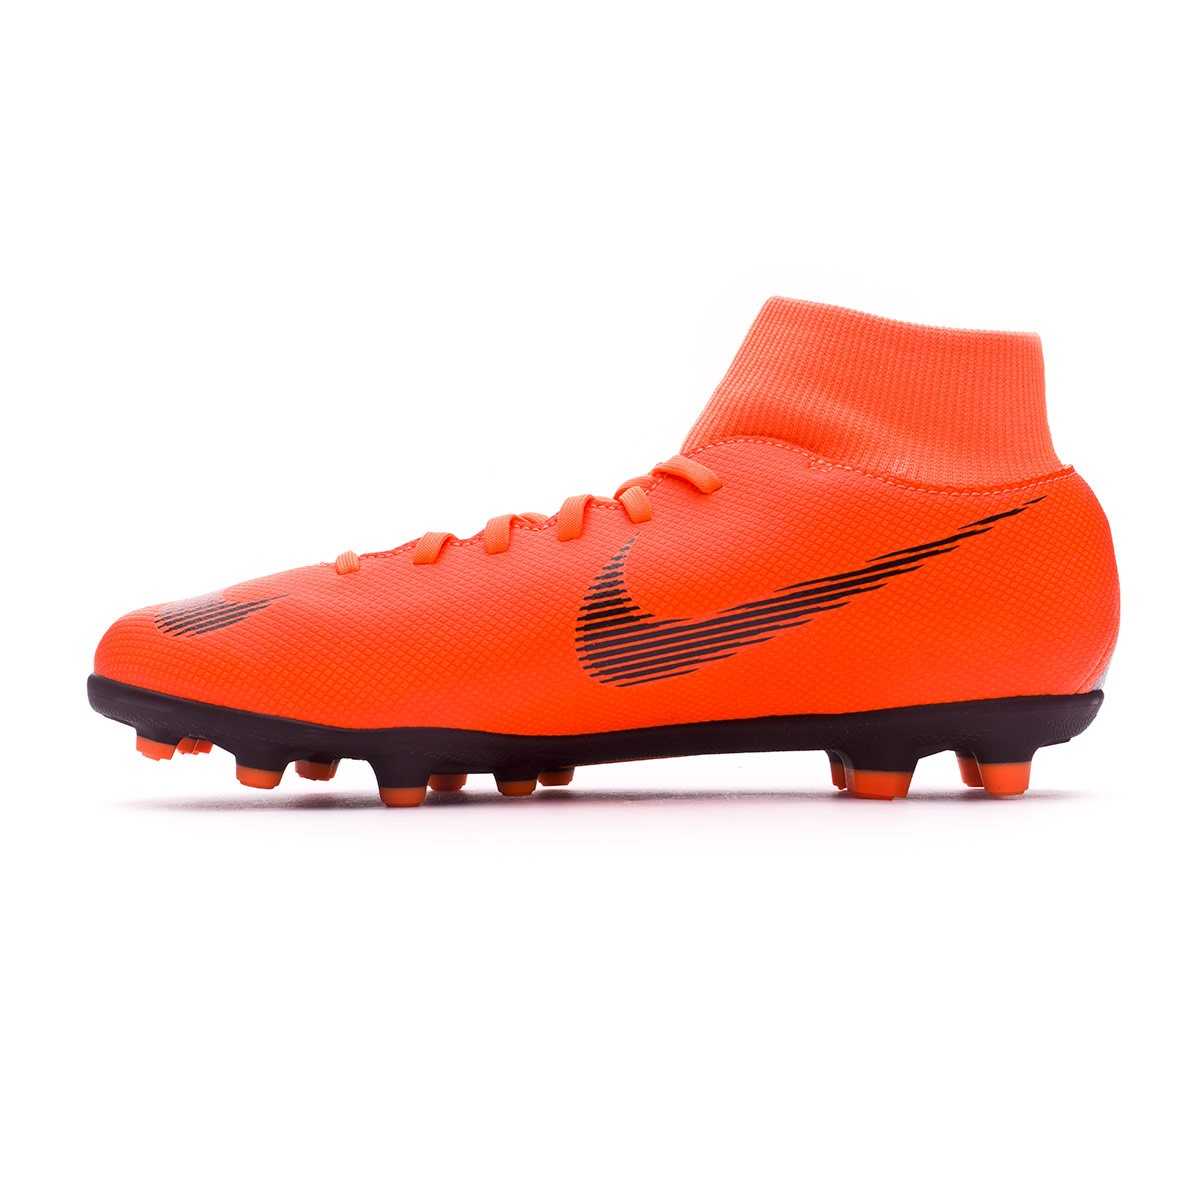 ac08cfa5b Football Boots Nike Mercurial Superfly VI Club MG Total orange-Black-Volt -  Tienda de fútbol Fútbol Emotion